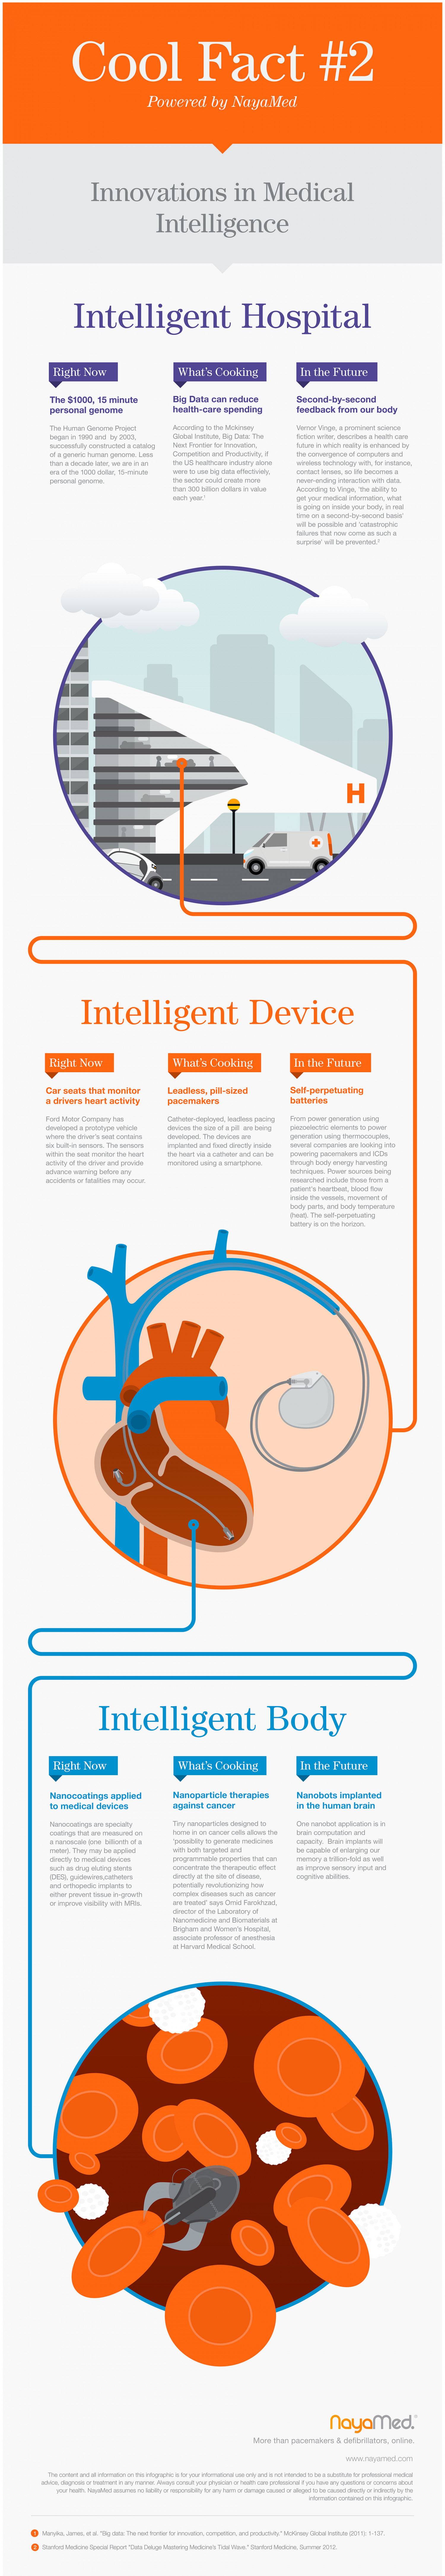 Cool Fact #2 : Innovations in Medical Intelligence Infographic